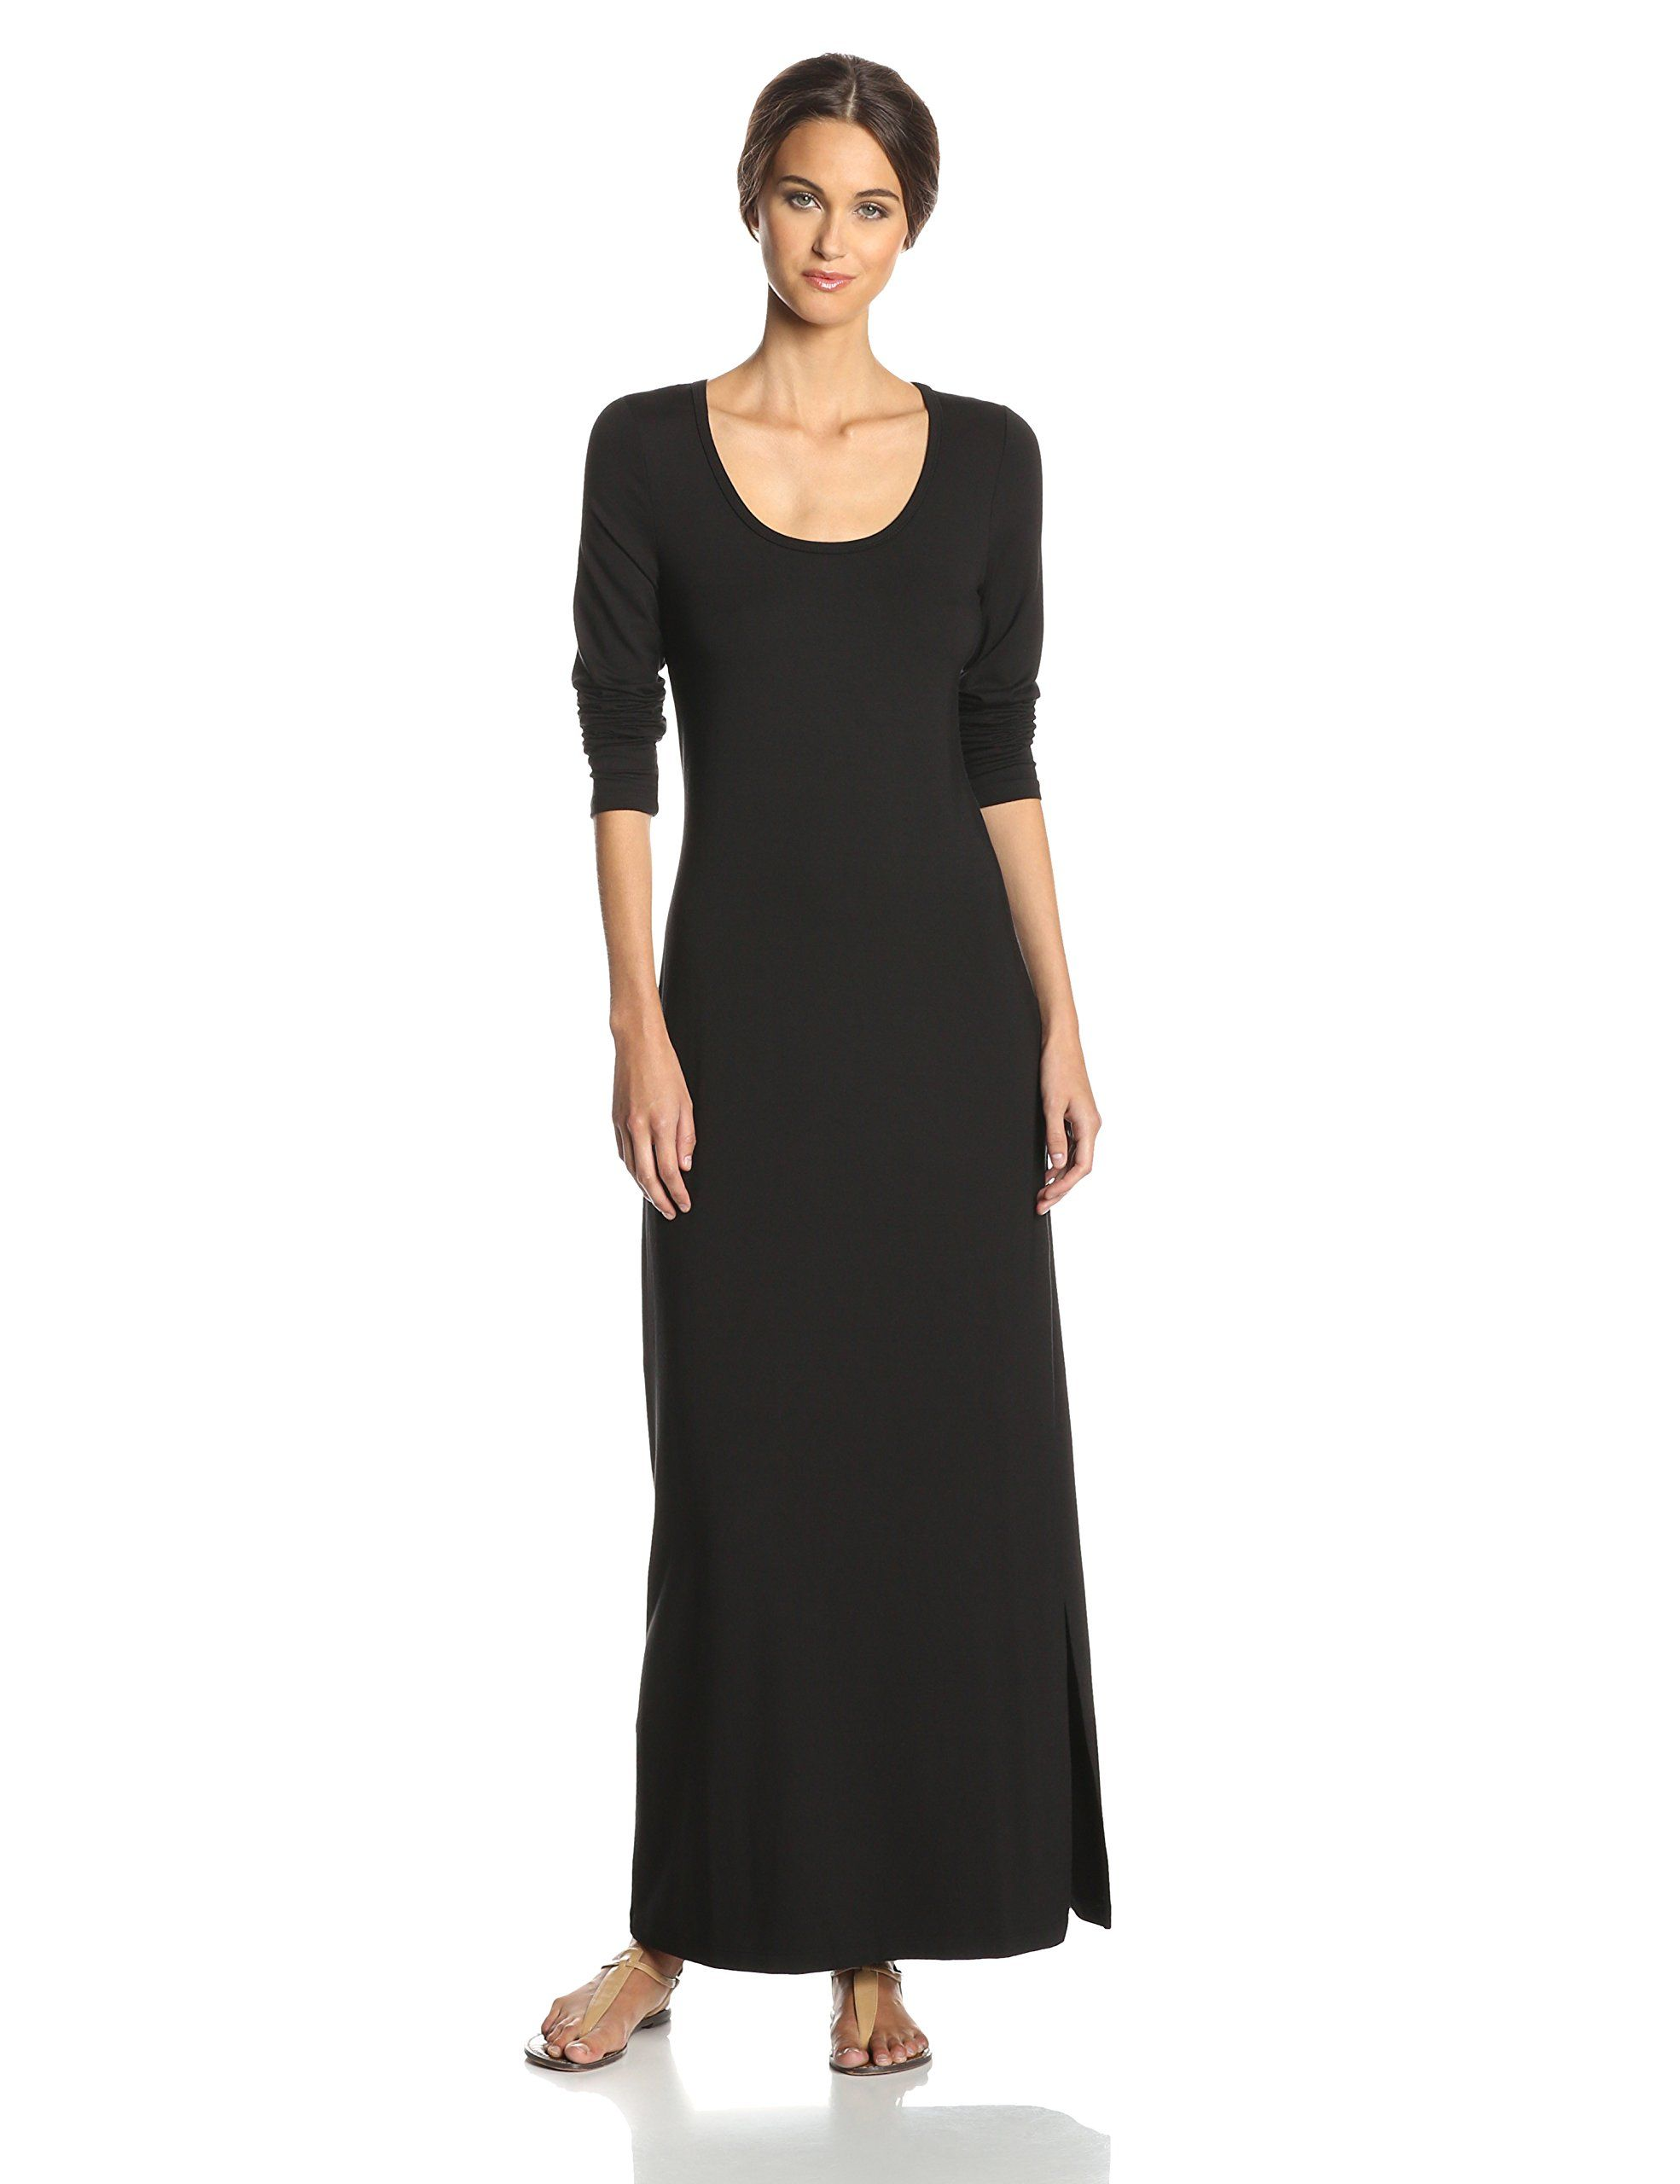 Karen kane womenus long sleeve maxi dress black window shopping